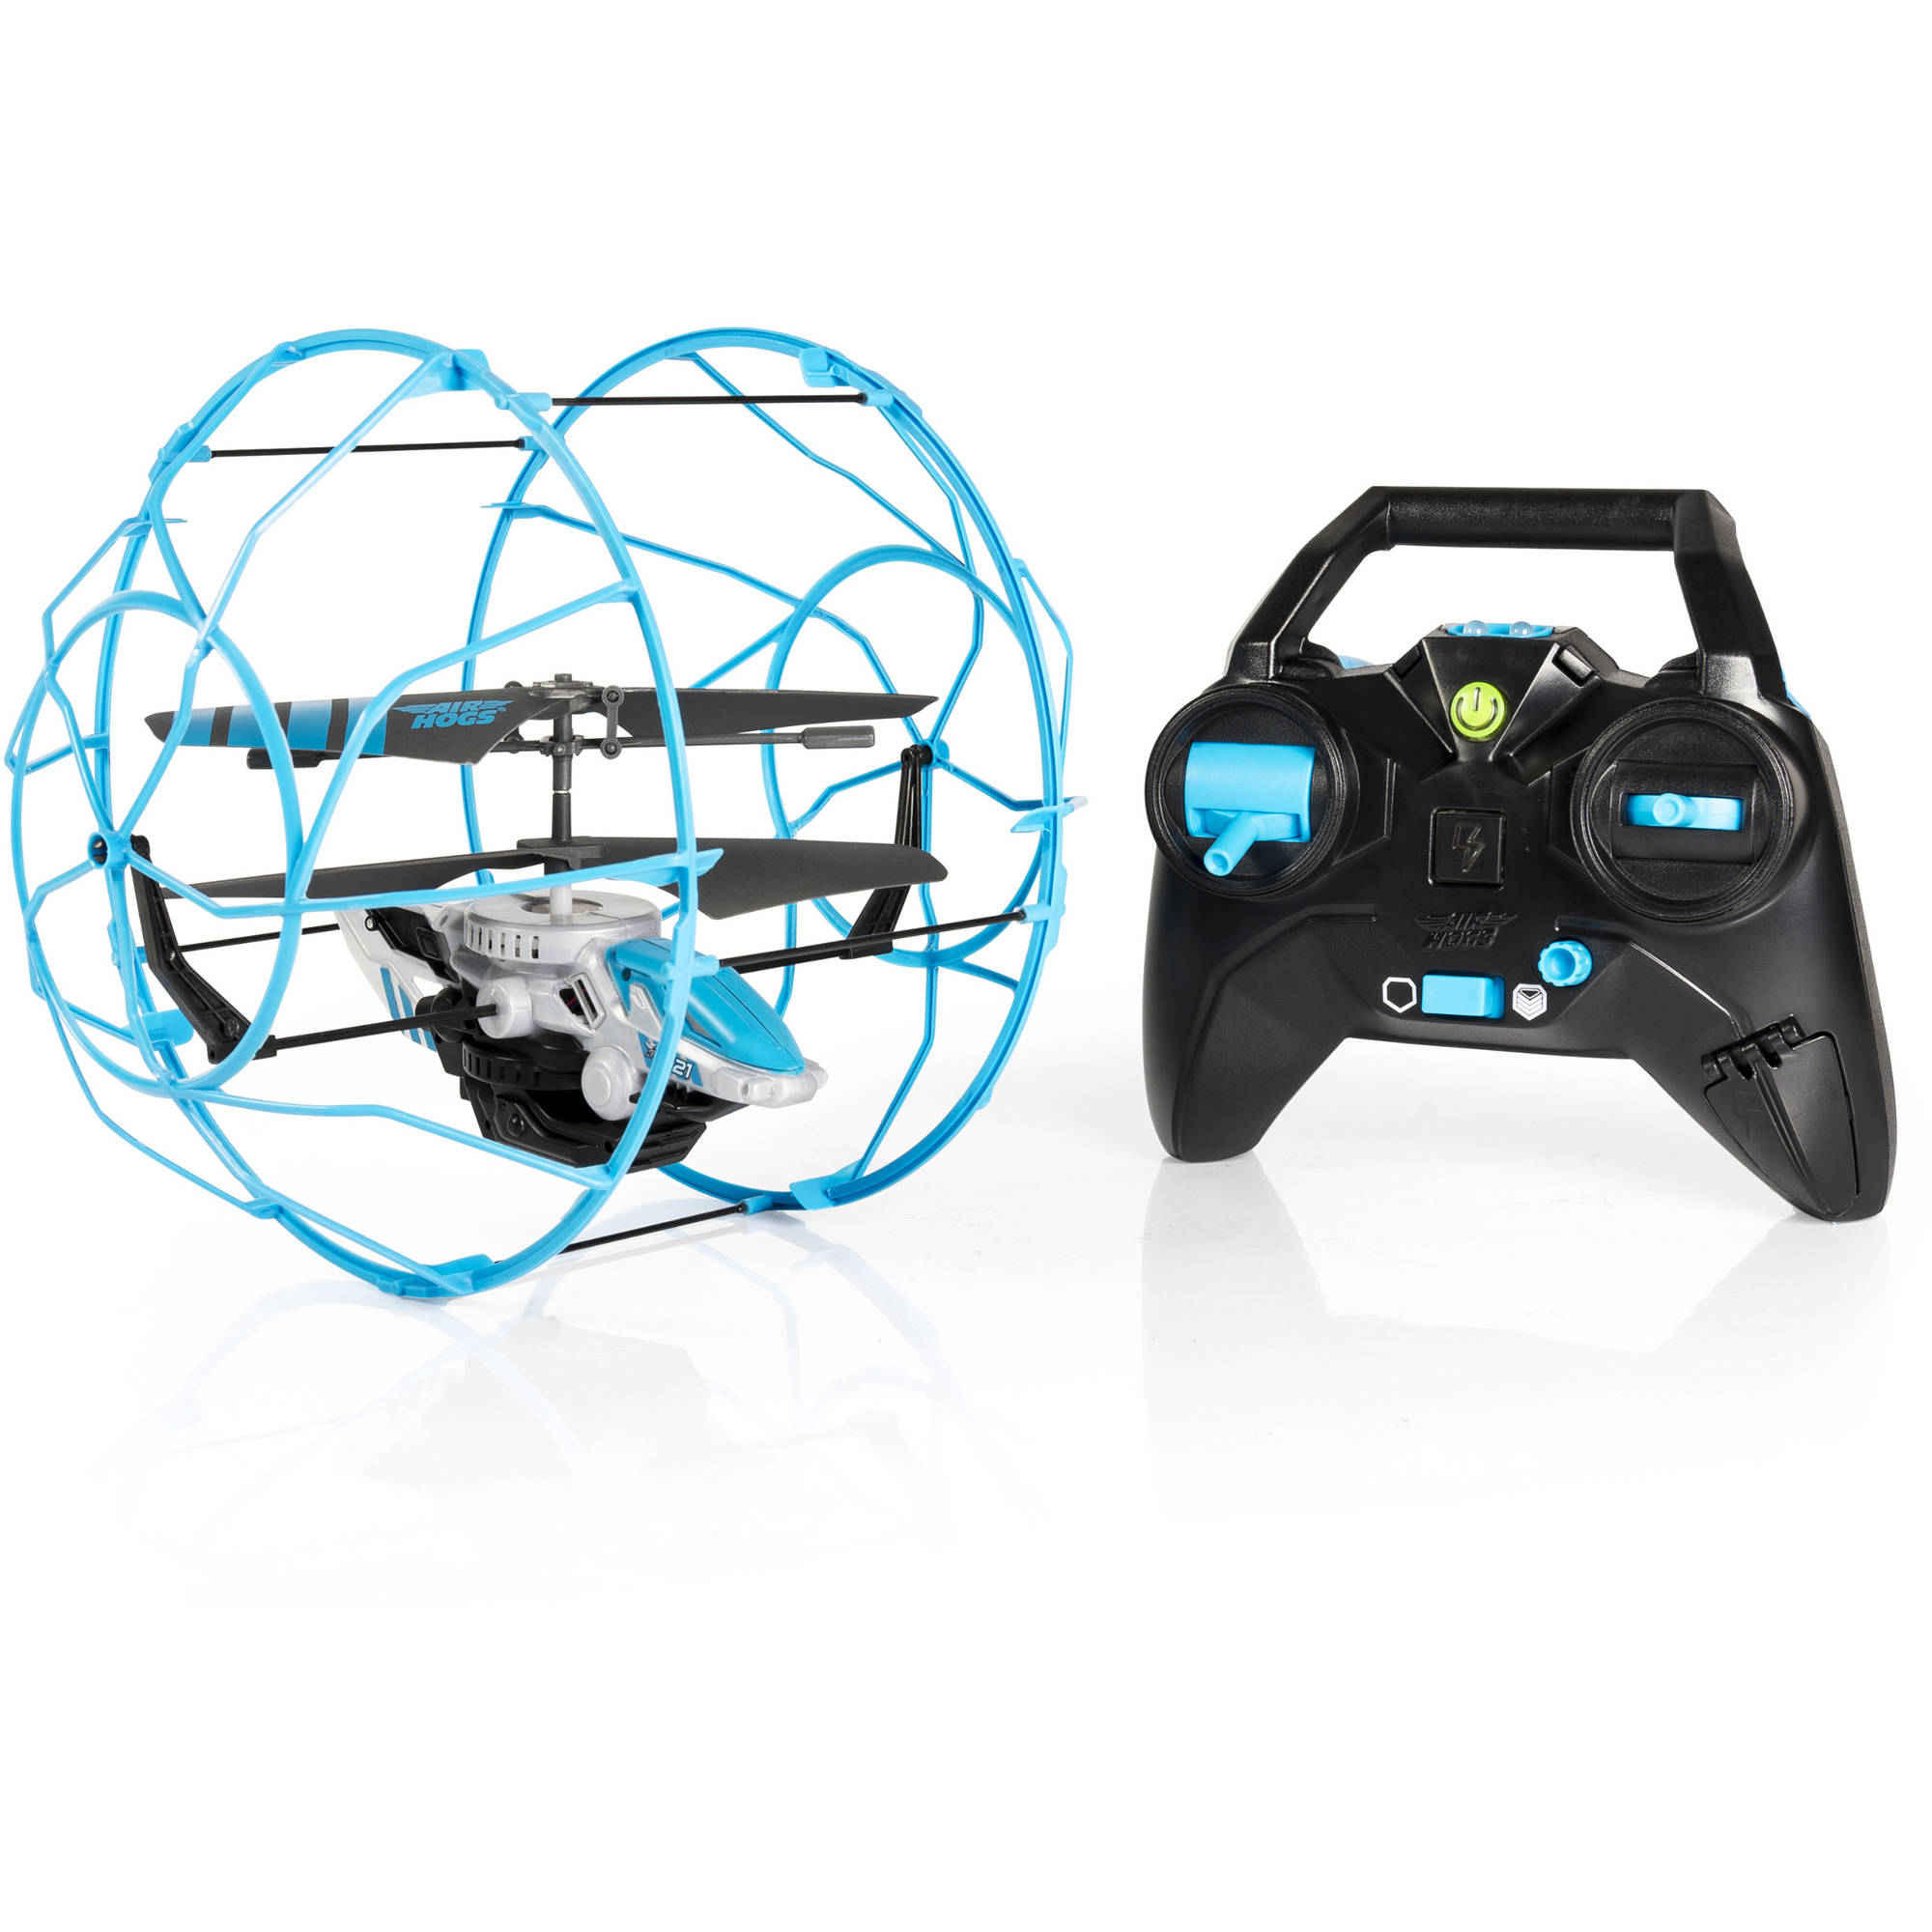 Air Hogs RC Rollercopter, Blue/Silver